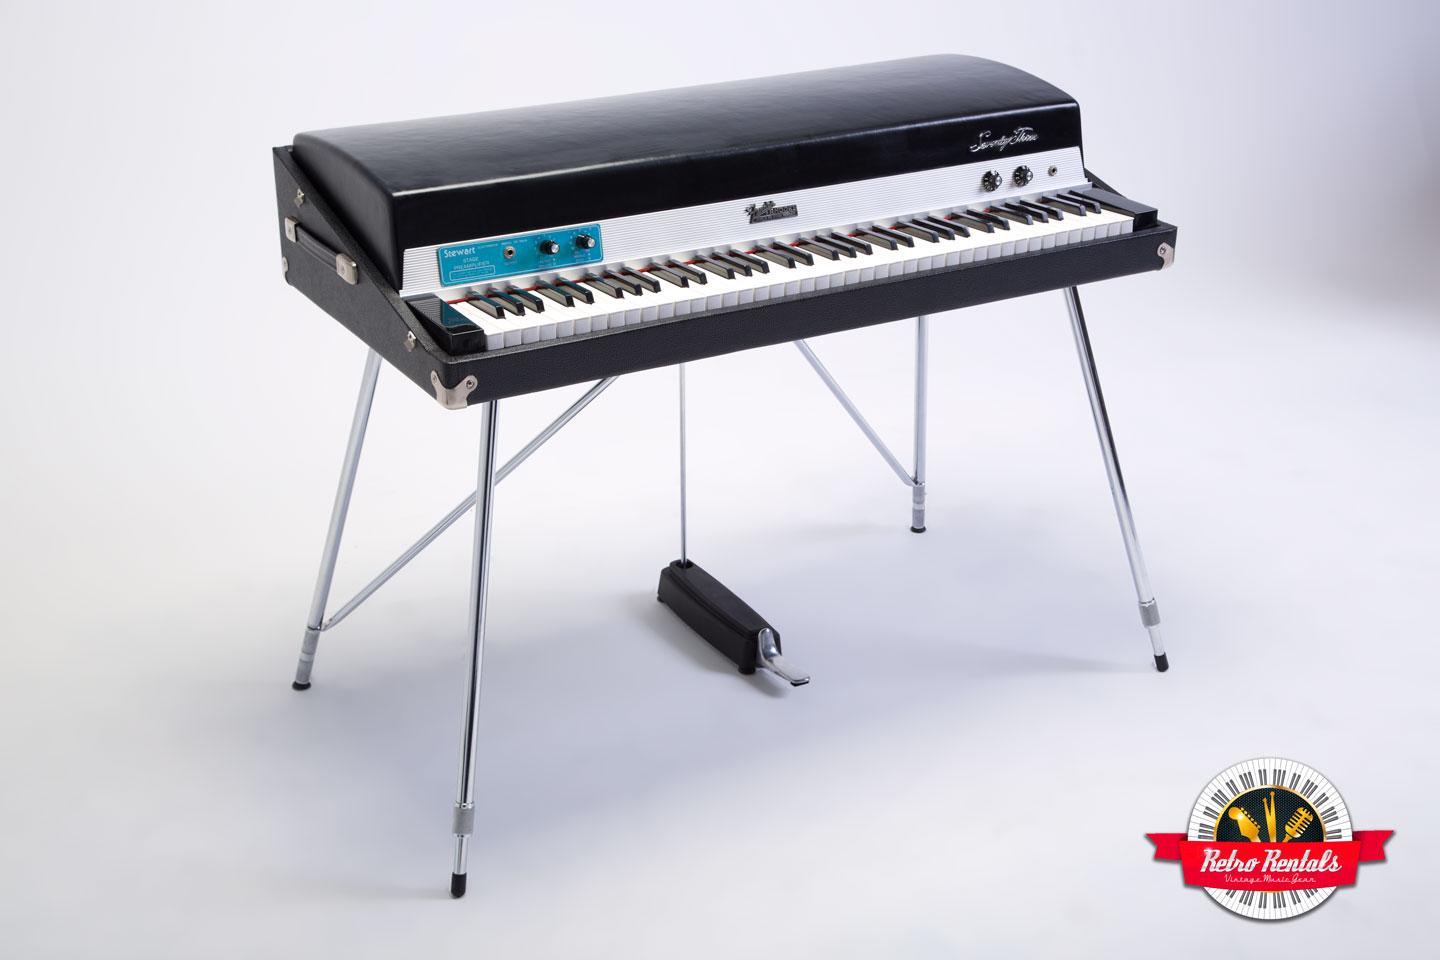 1972 fender rhodes mark 1 stage piano 73 key retro rentals. Black Bedroom Furniture Sets. Home Design Ideas